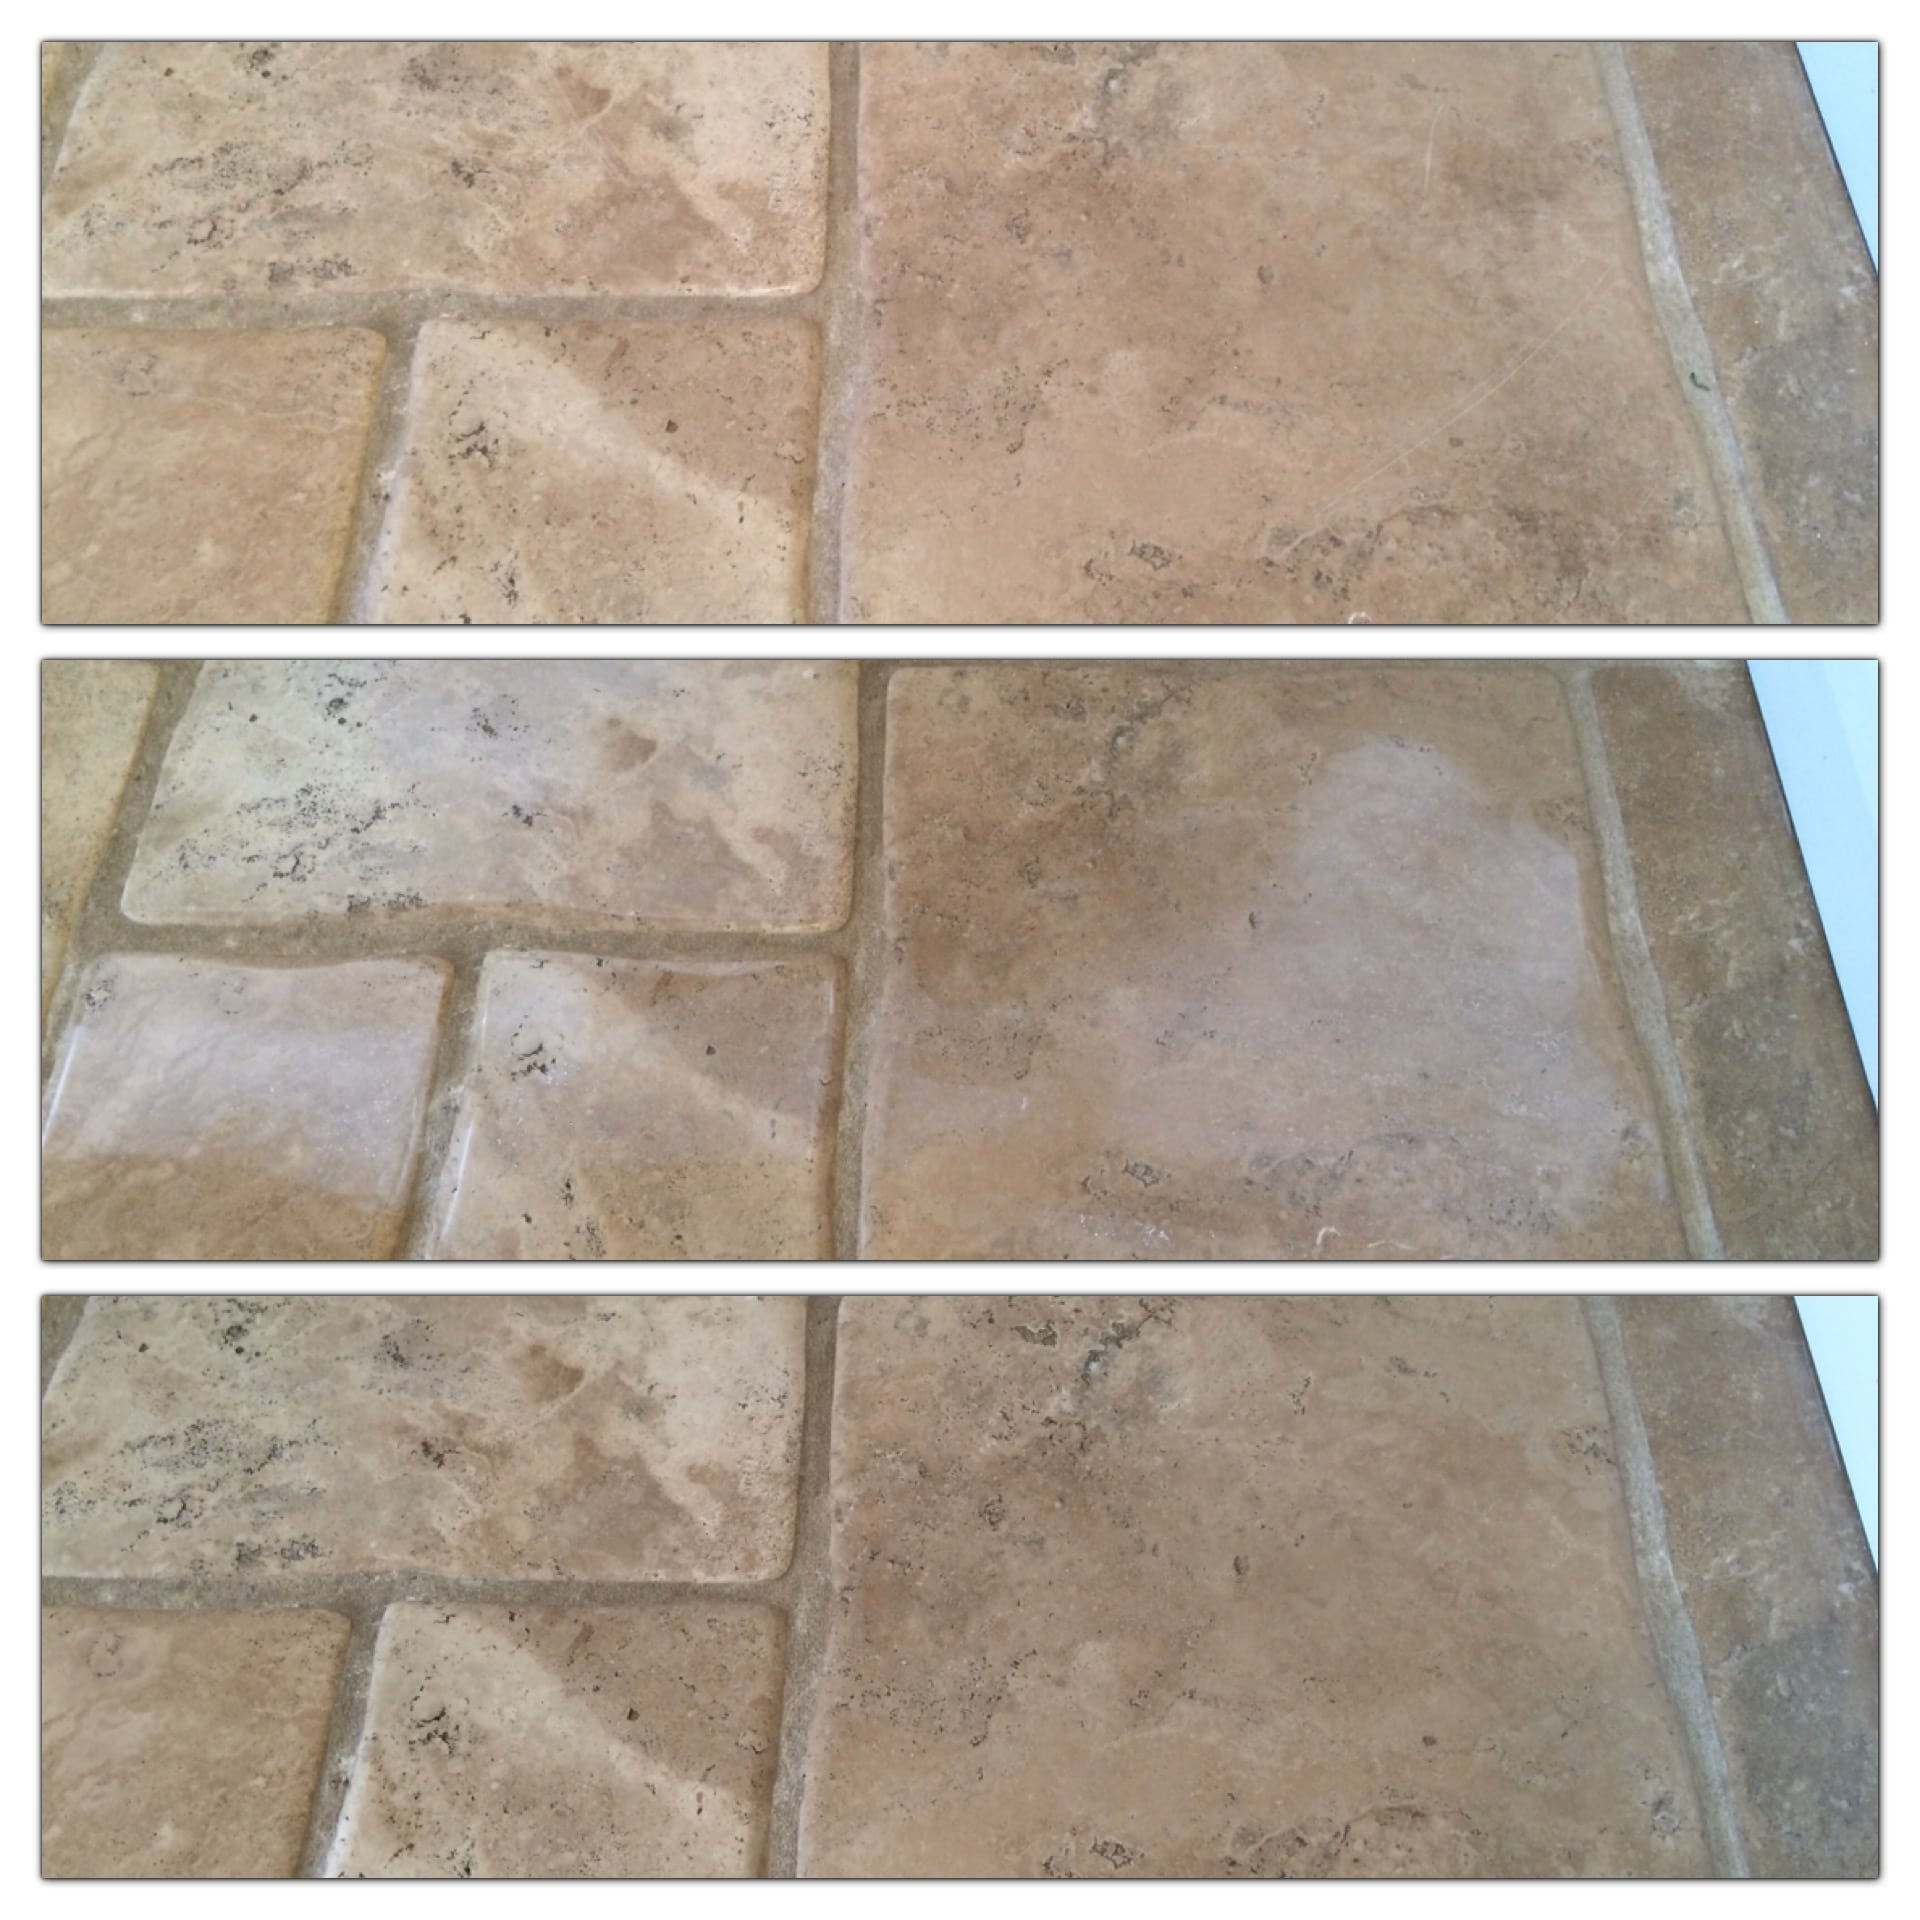 Stone Floor Tile Scratch Removal Bespoke Repairs